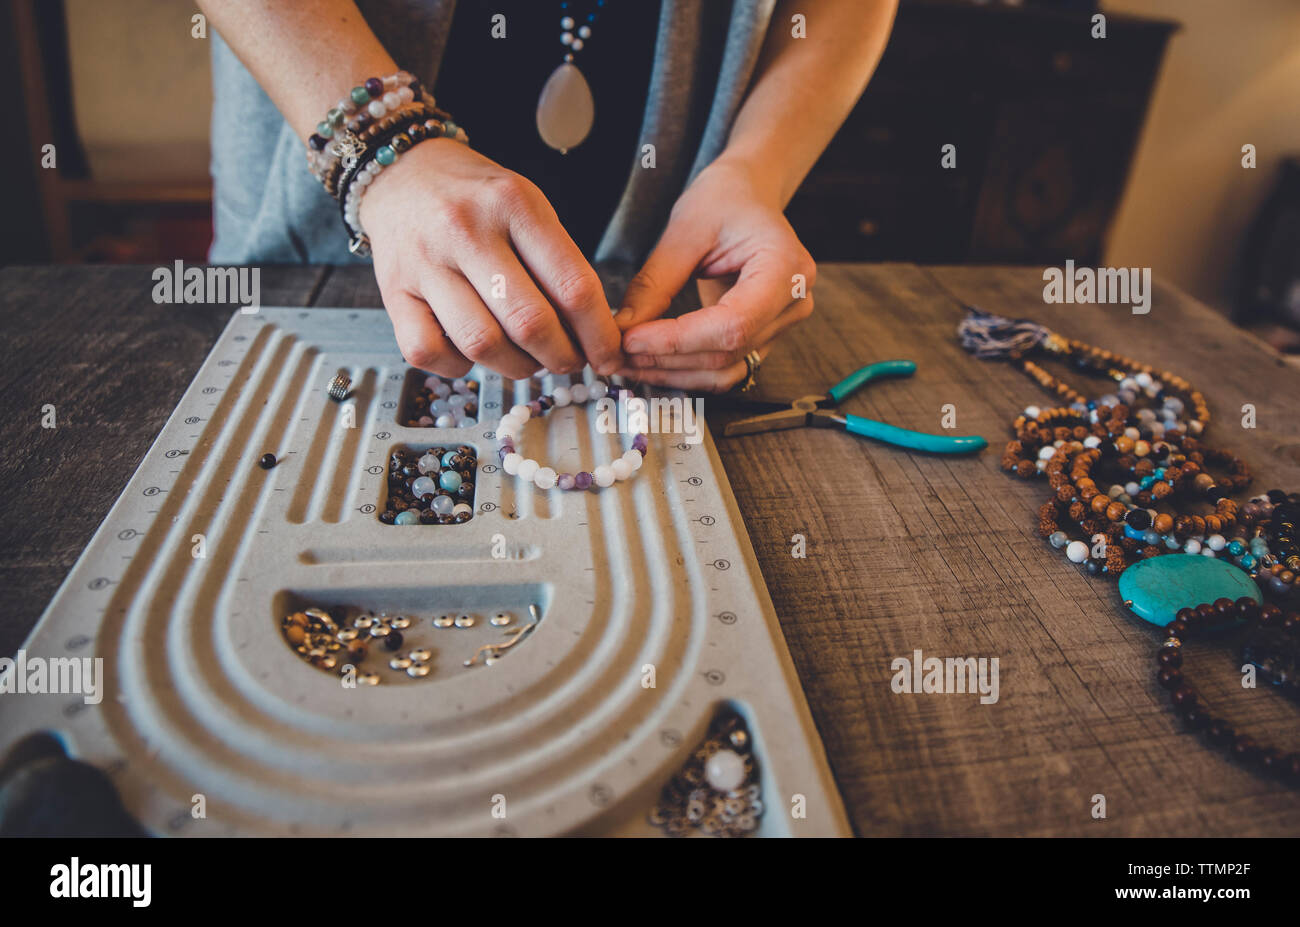 Midsection of woman using beading board while making bracelets while standing by table at home Stock Photo